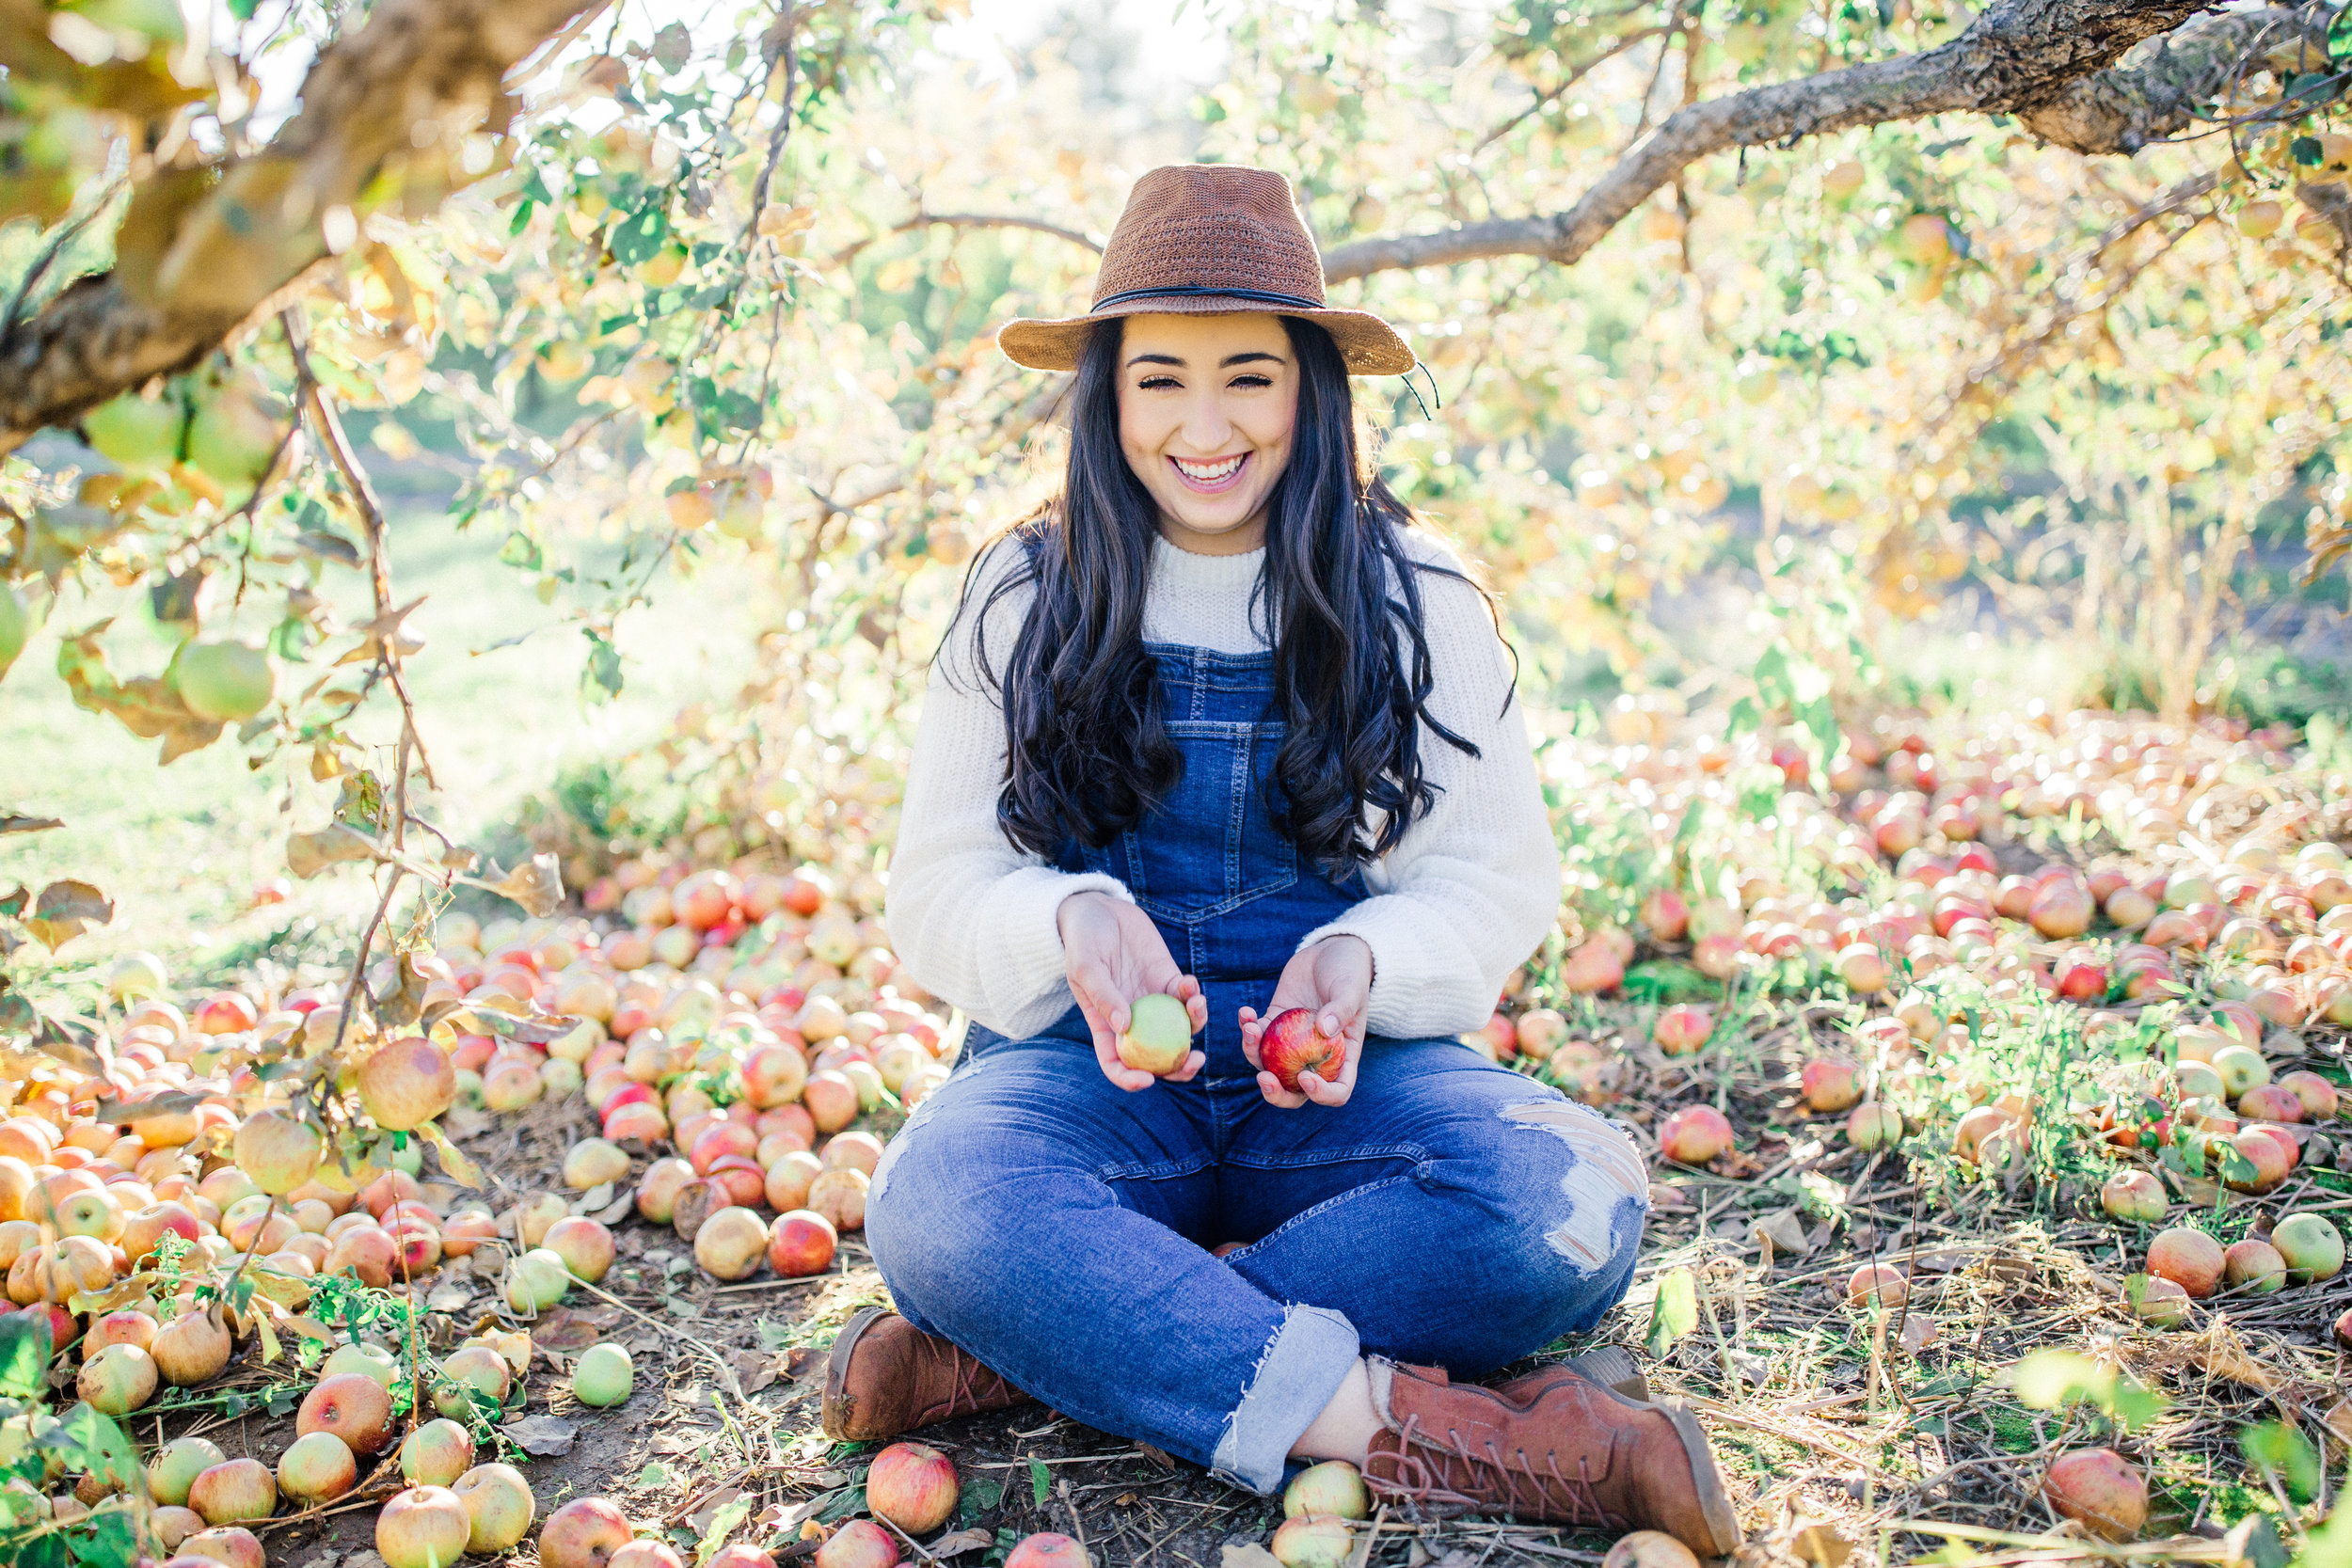 Stillwater Senior Portraits at an Apple Orchard during golden hour